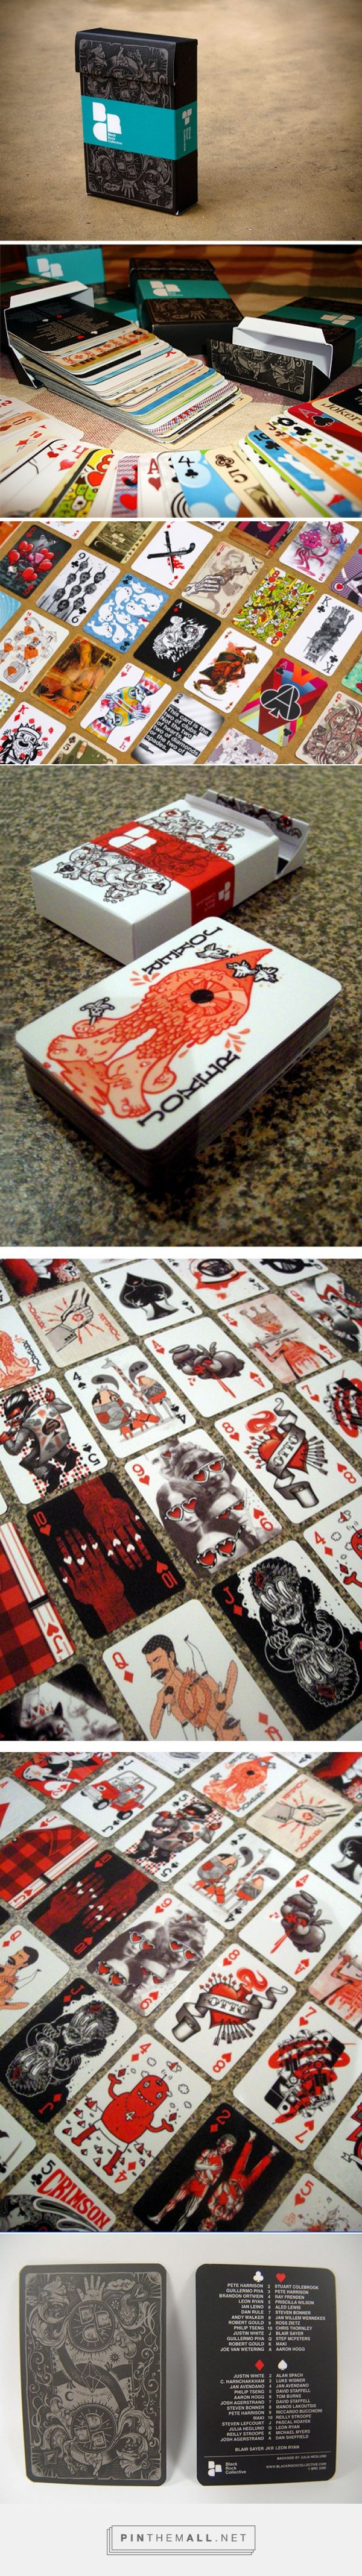 Blackrock playing cards by Pete Harrison